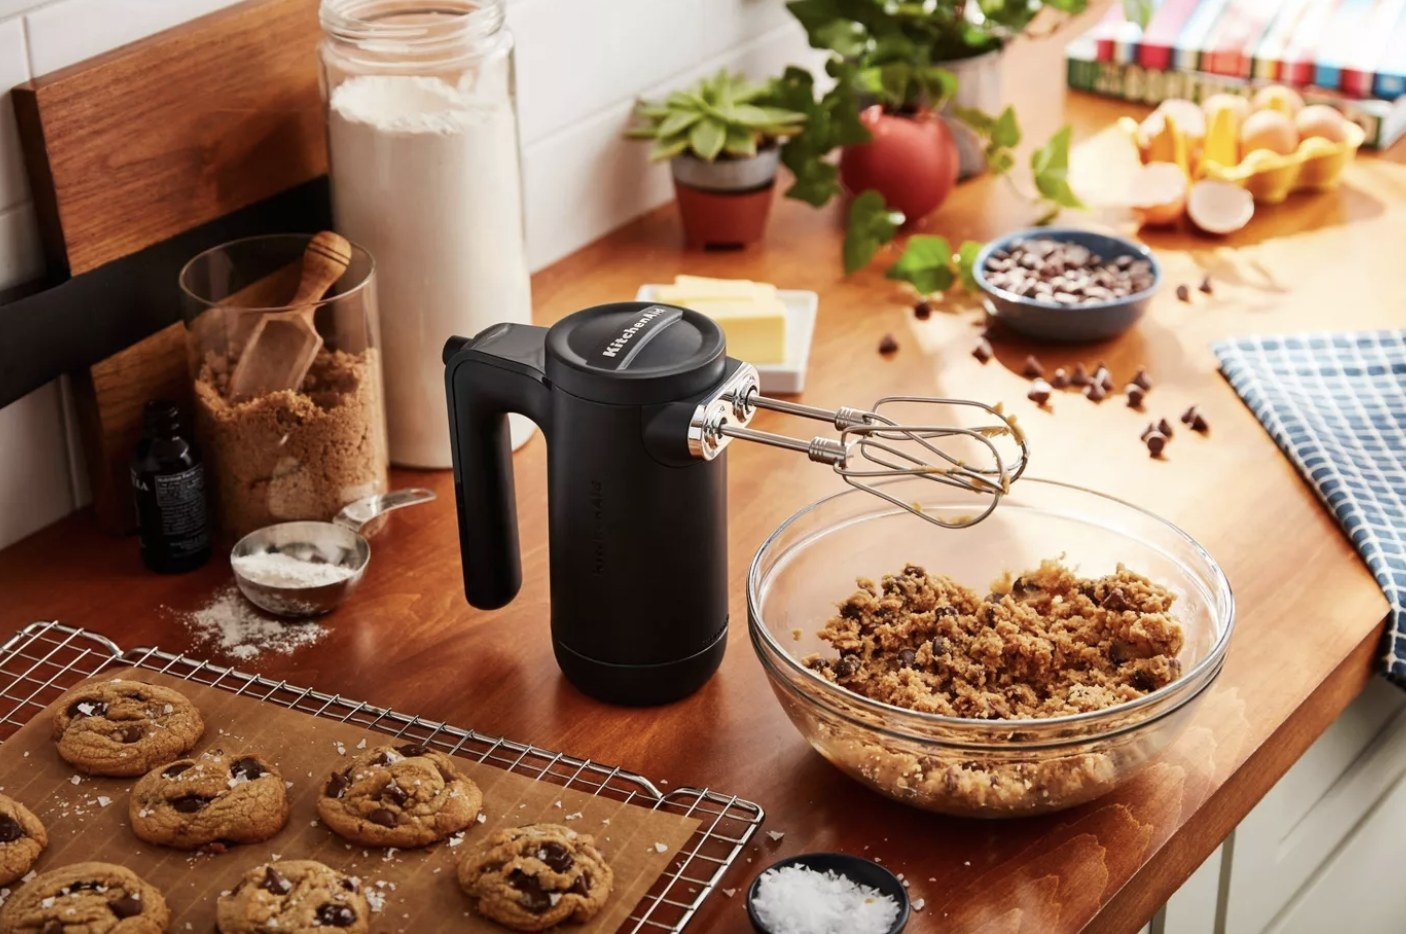 A black, KitchenAid hand mixer surrounded by baking supplies and chocolate chip cookies